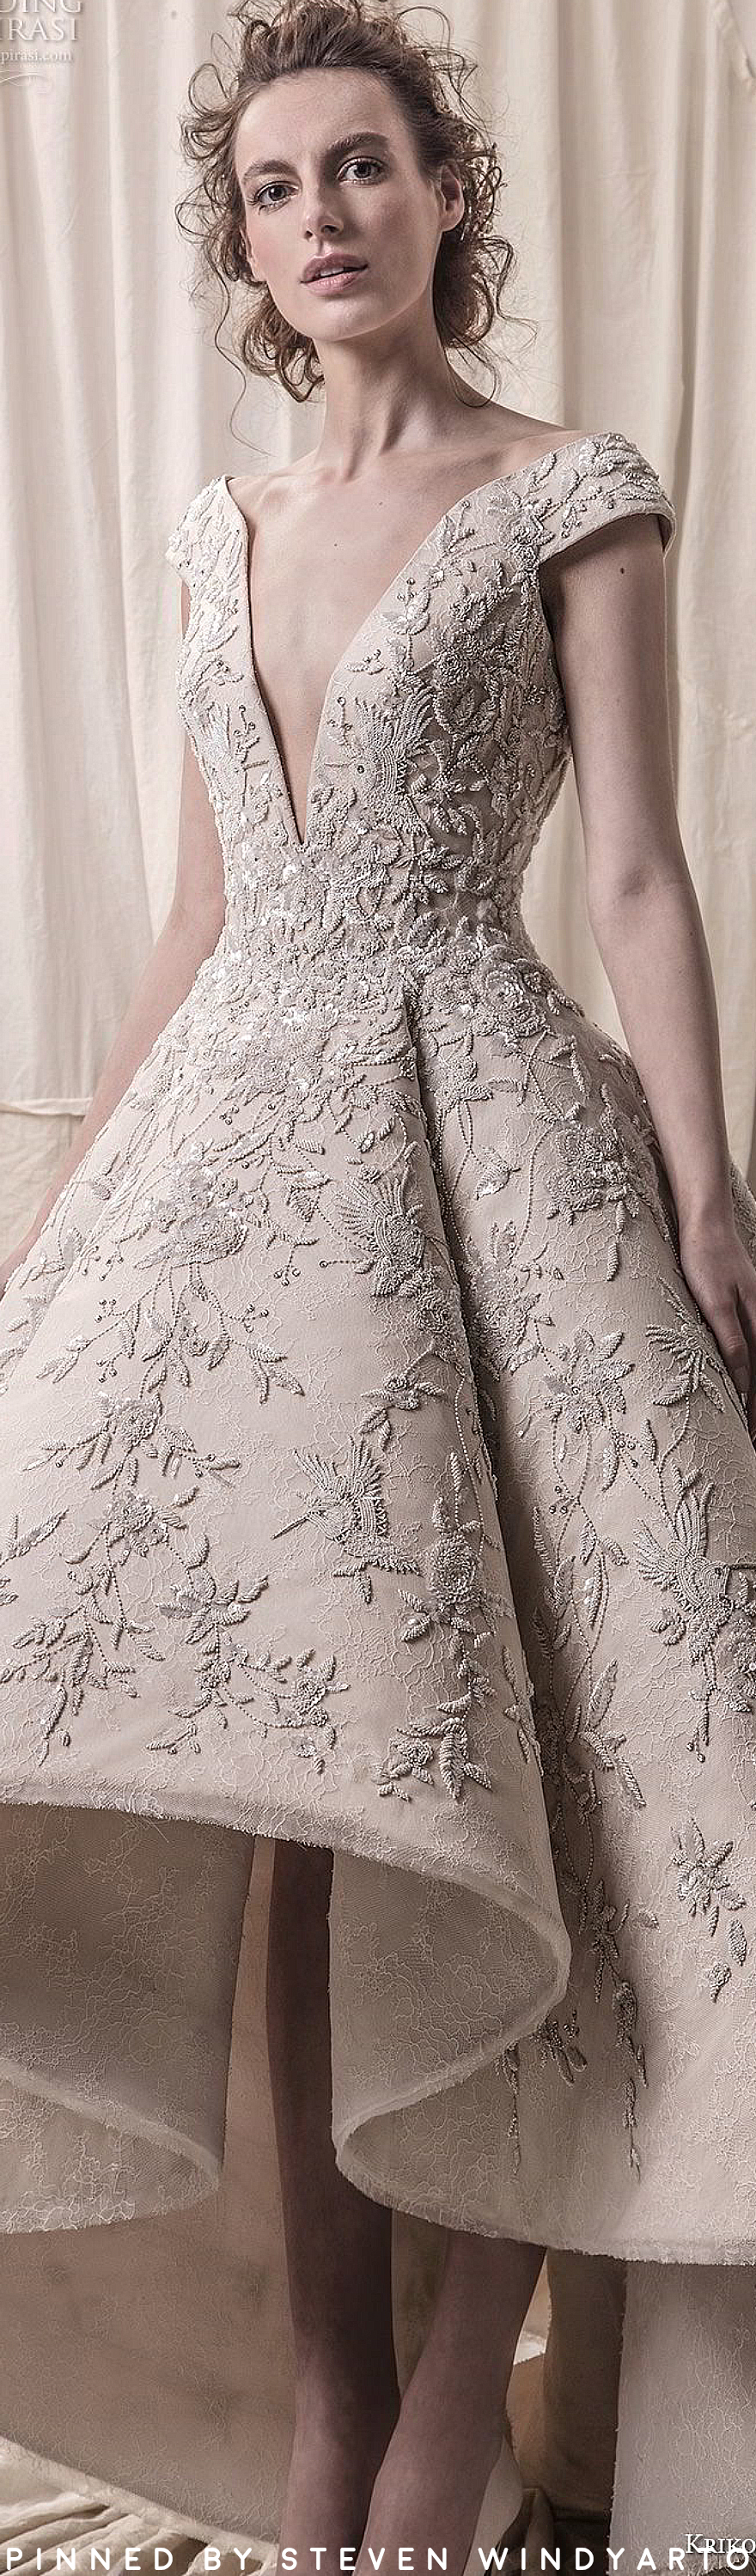 Krikor jabotian spring wedding dresses spring weddings